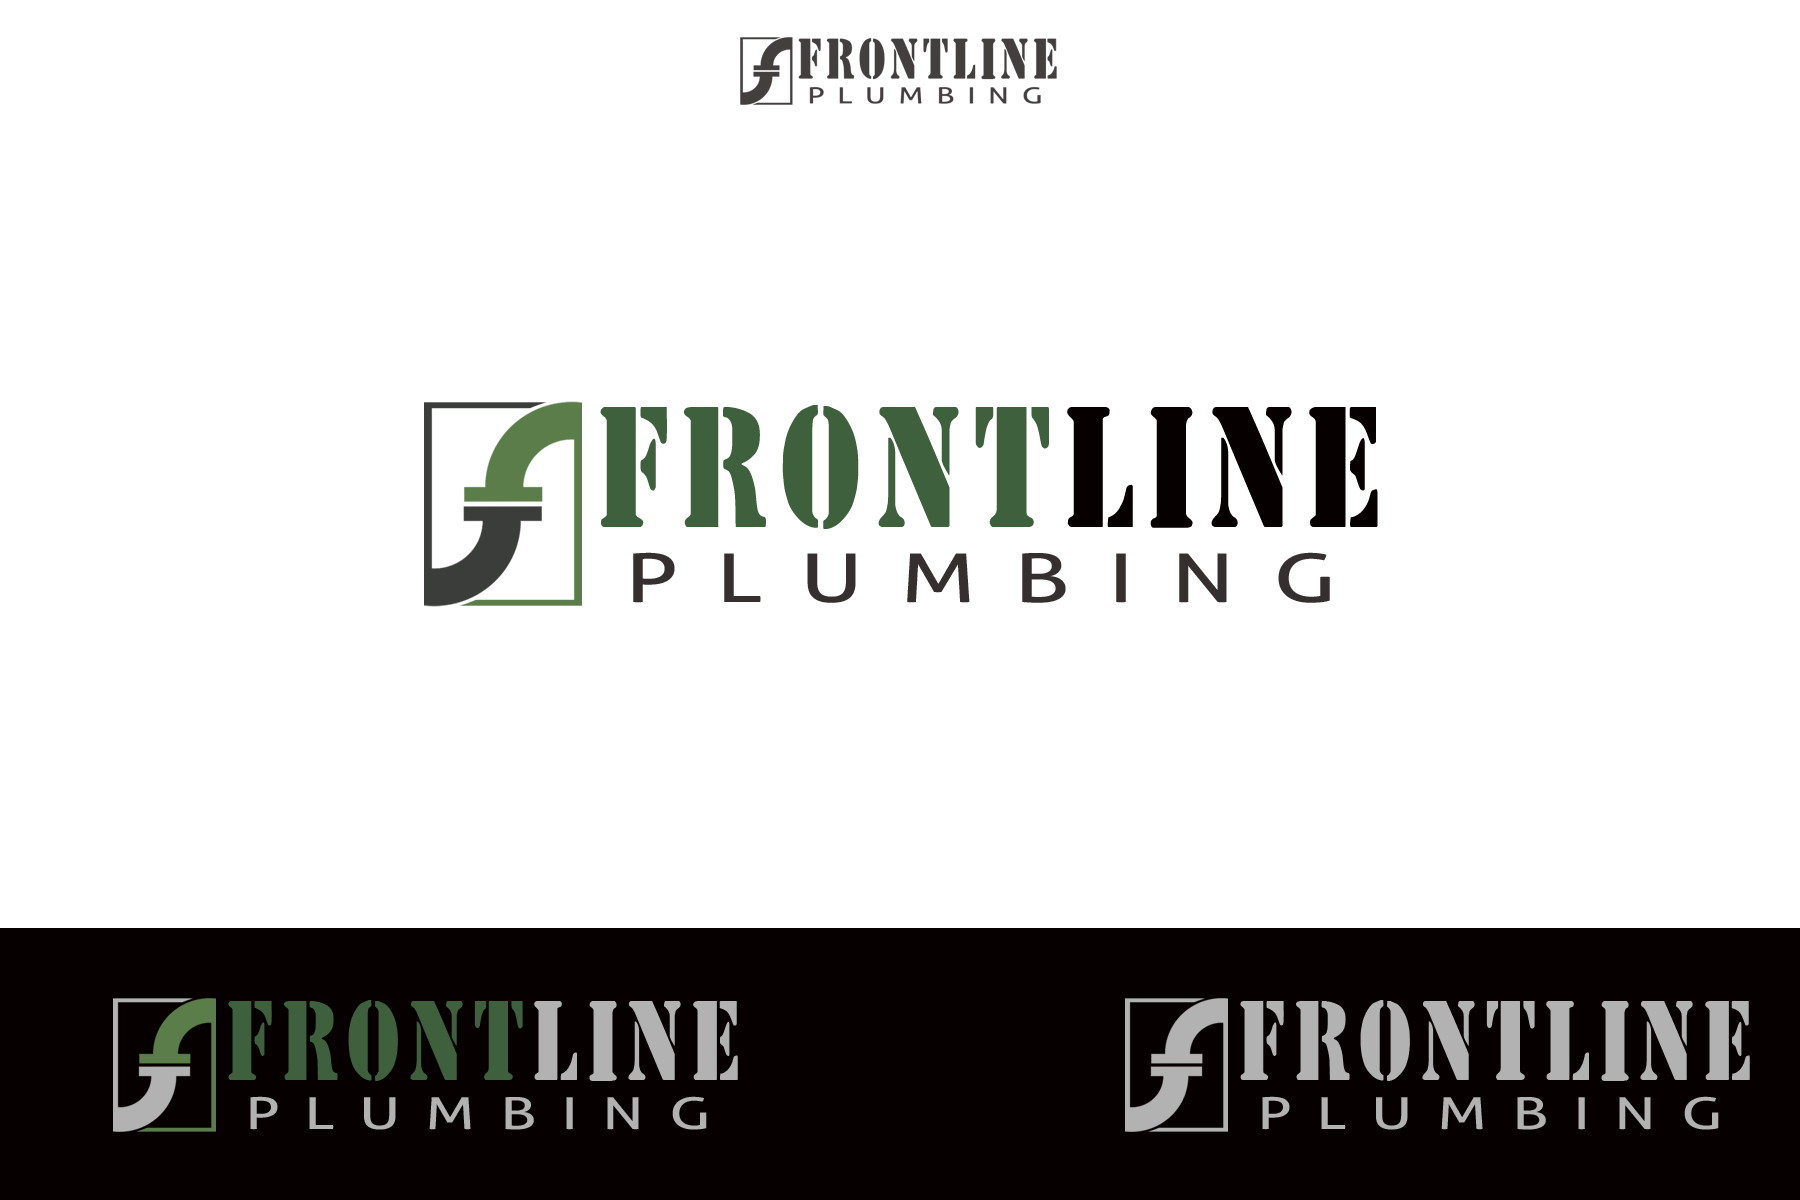 Logo Design by golden-hand - Entry No. 49 in the Logo Design Contest Fun Logo Design for Front Line Plumbing.